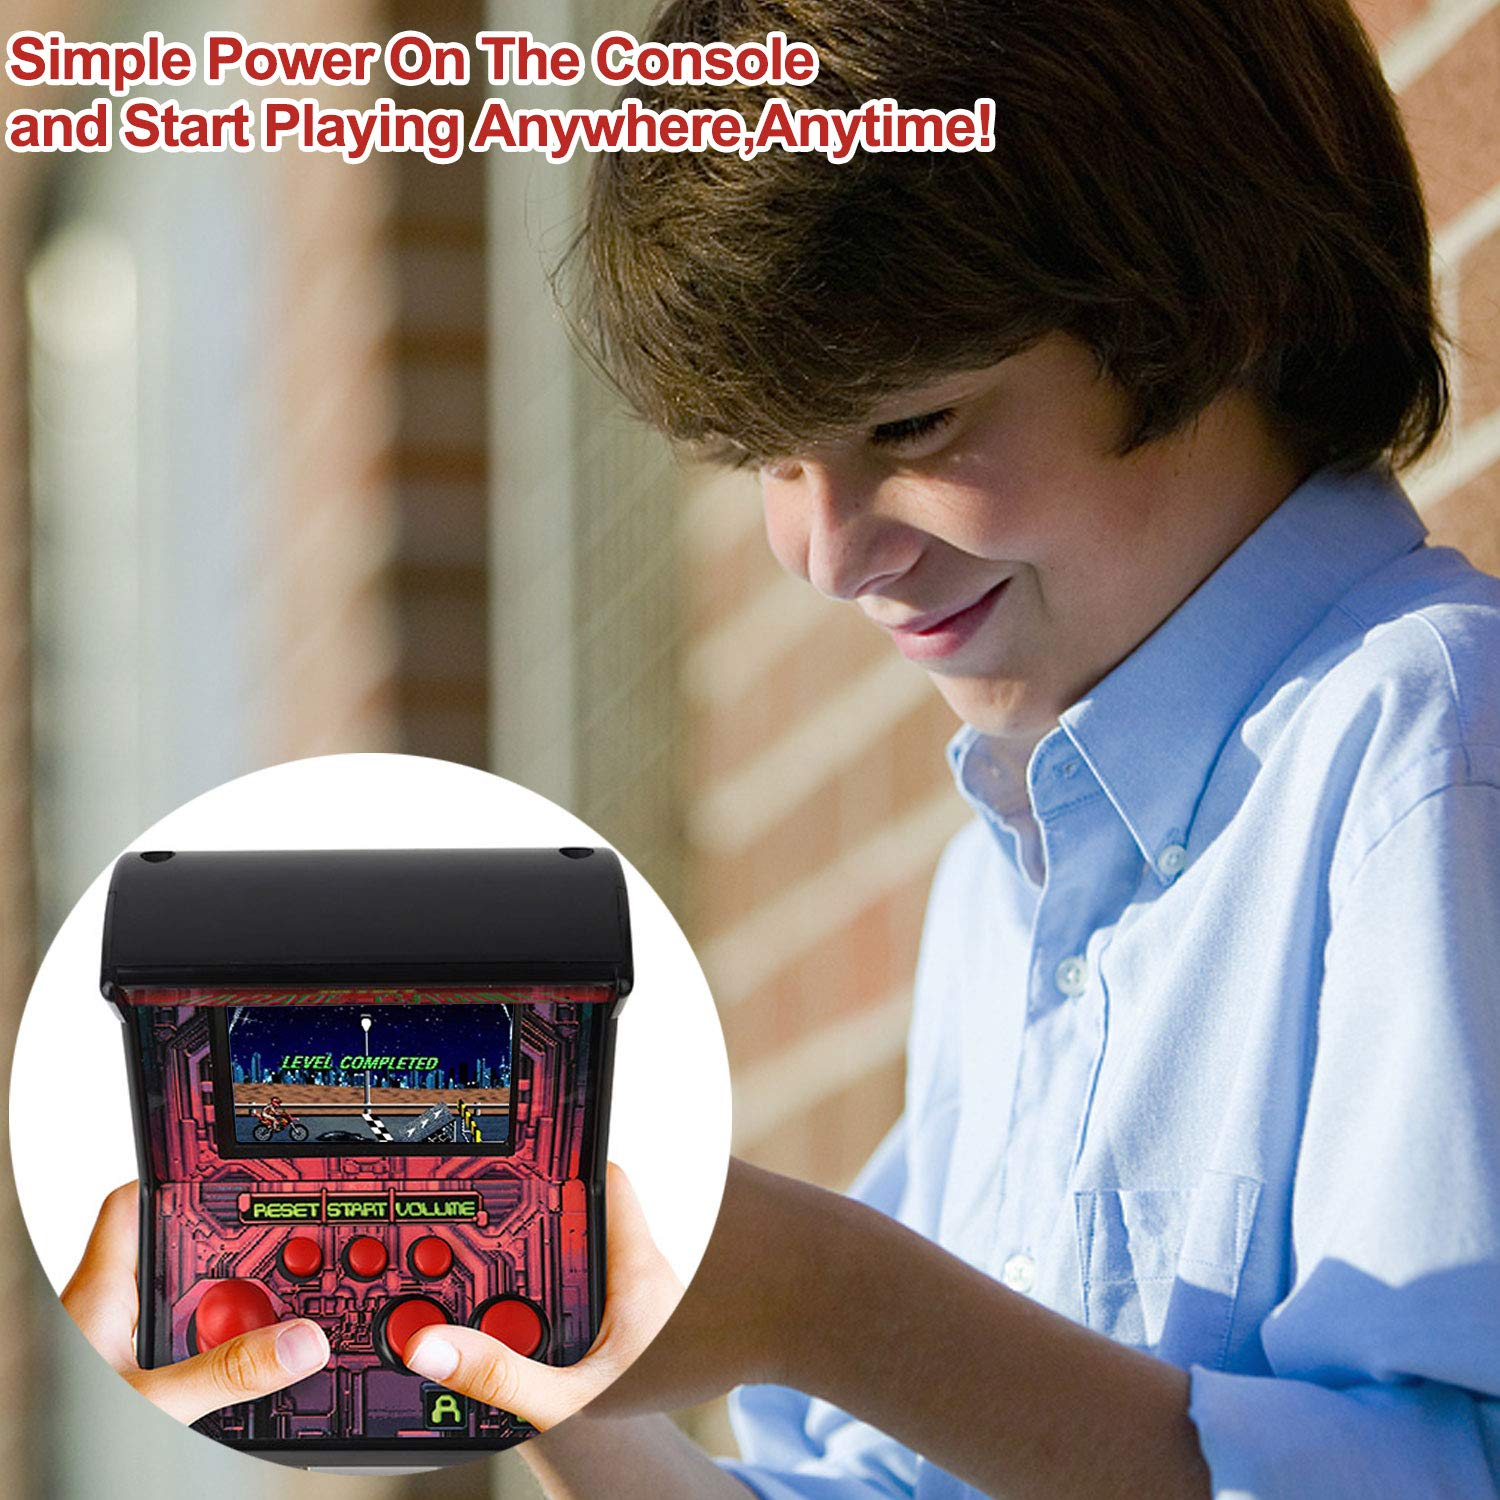 GBD Kids Mini Retro Arcade Game Cabinet Machine 200 Classic Handheld Video Games 2.5'' Display Joystick Travel Portable Game Player Kids Boys Girls Holiday Birthday Gifts Electronic Toys by GBD (Image #6)